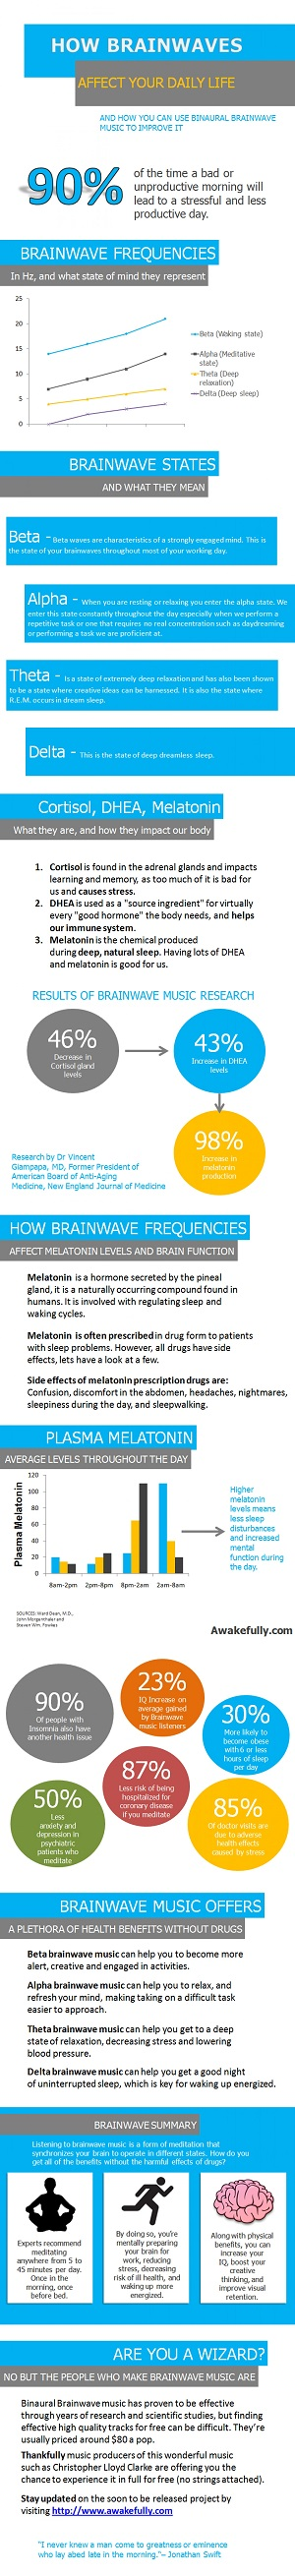 How brainwaves affect our daily life (click to enlarge)